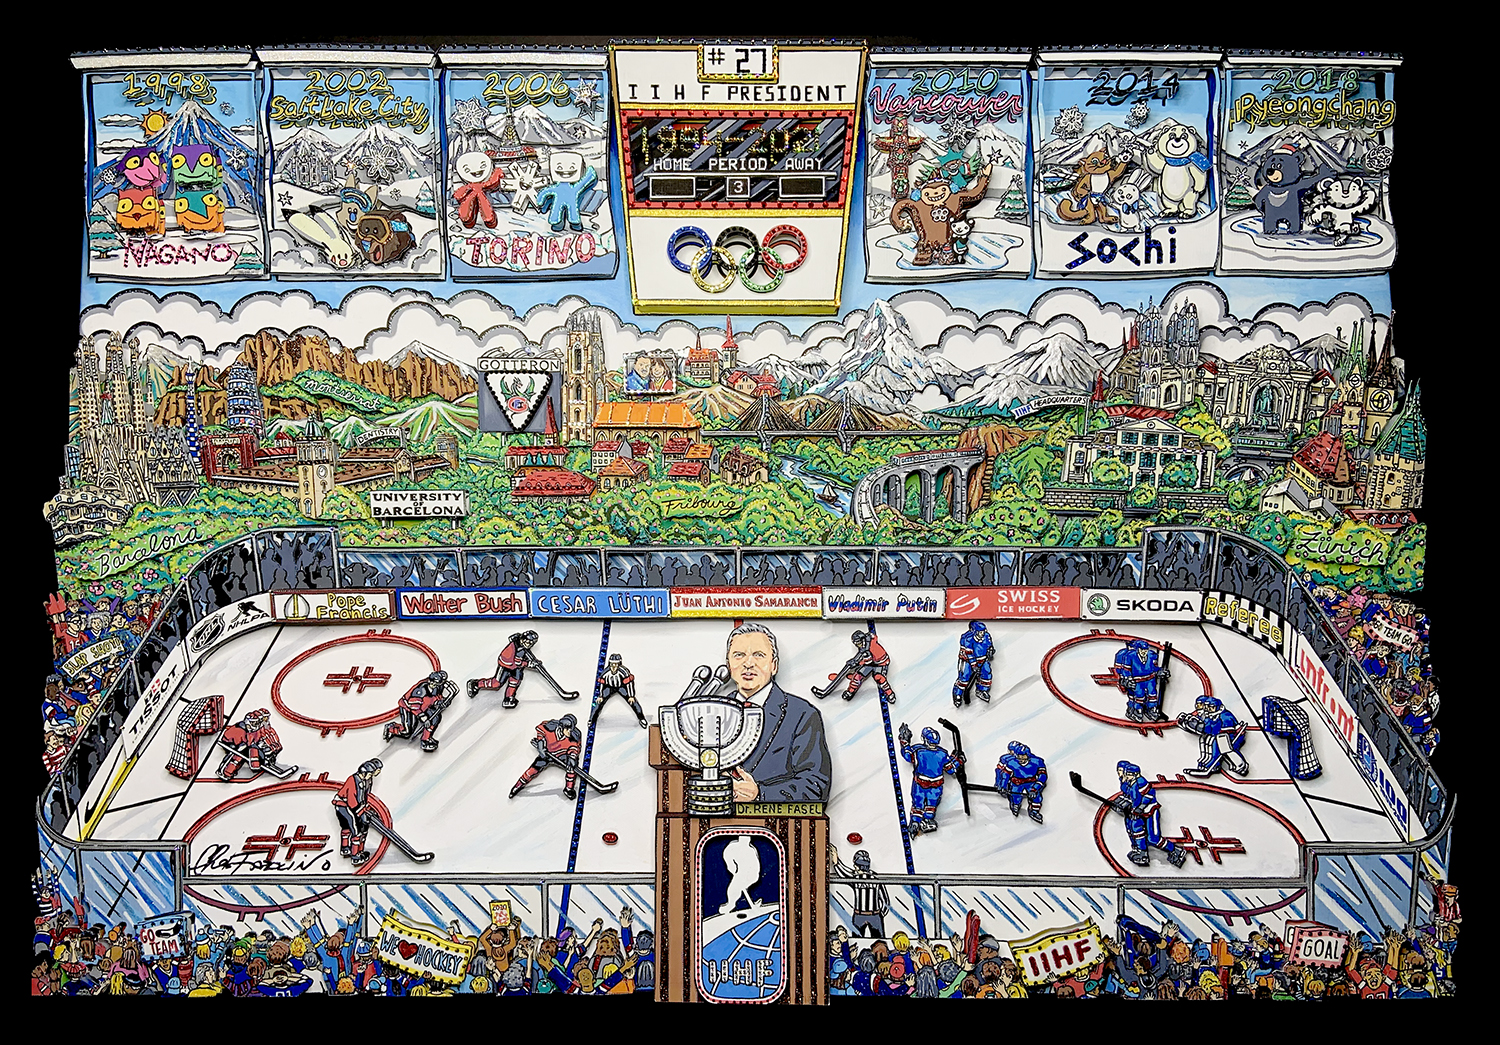 3D pop art by Charles Fazzino of a hockey rink and former President of IIHF, Dr. Rene Fasel